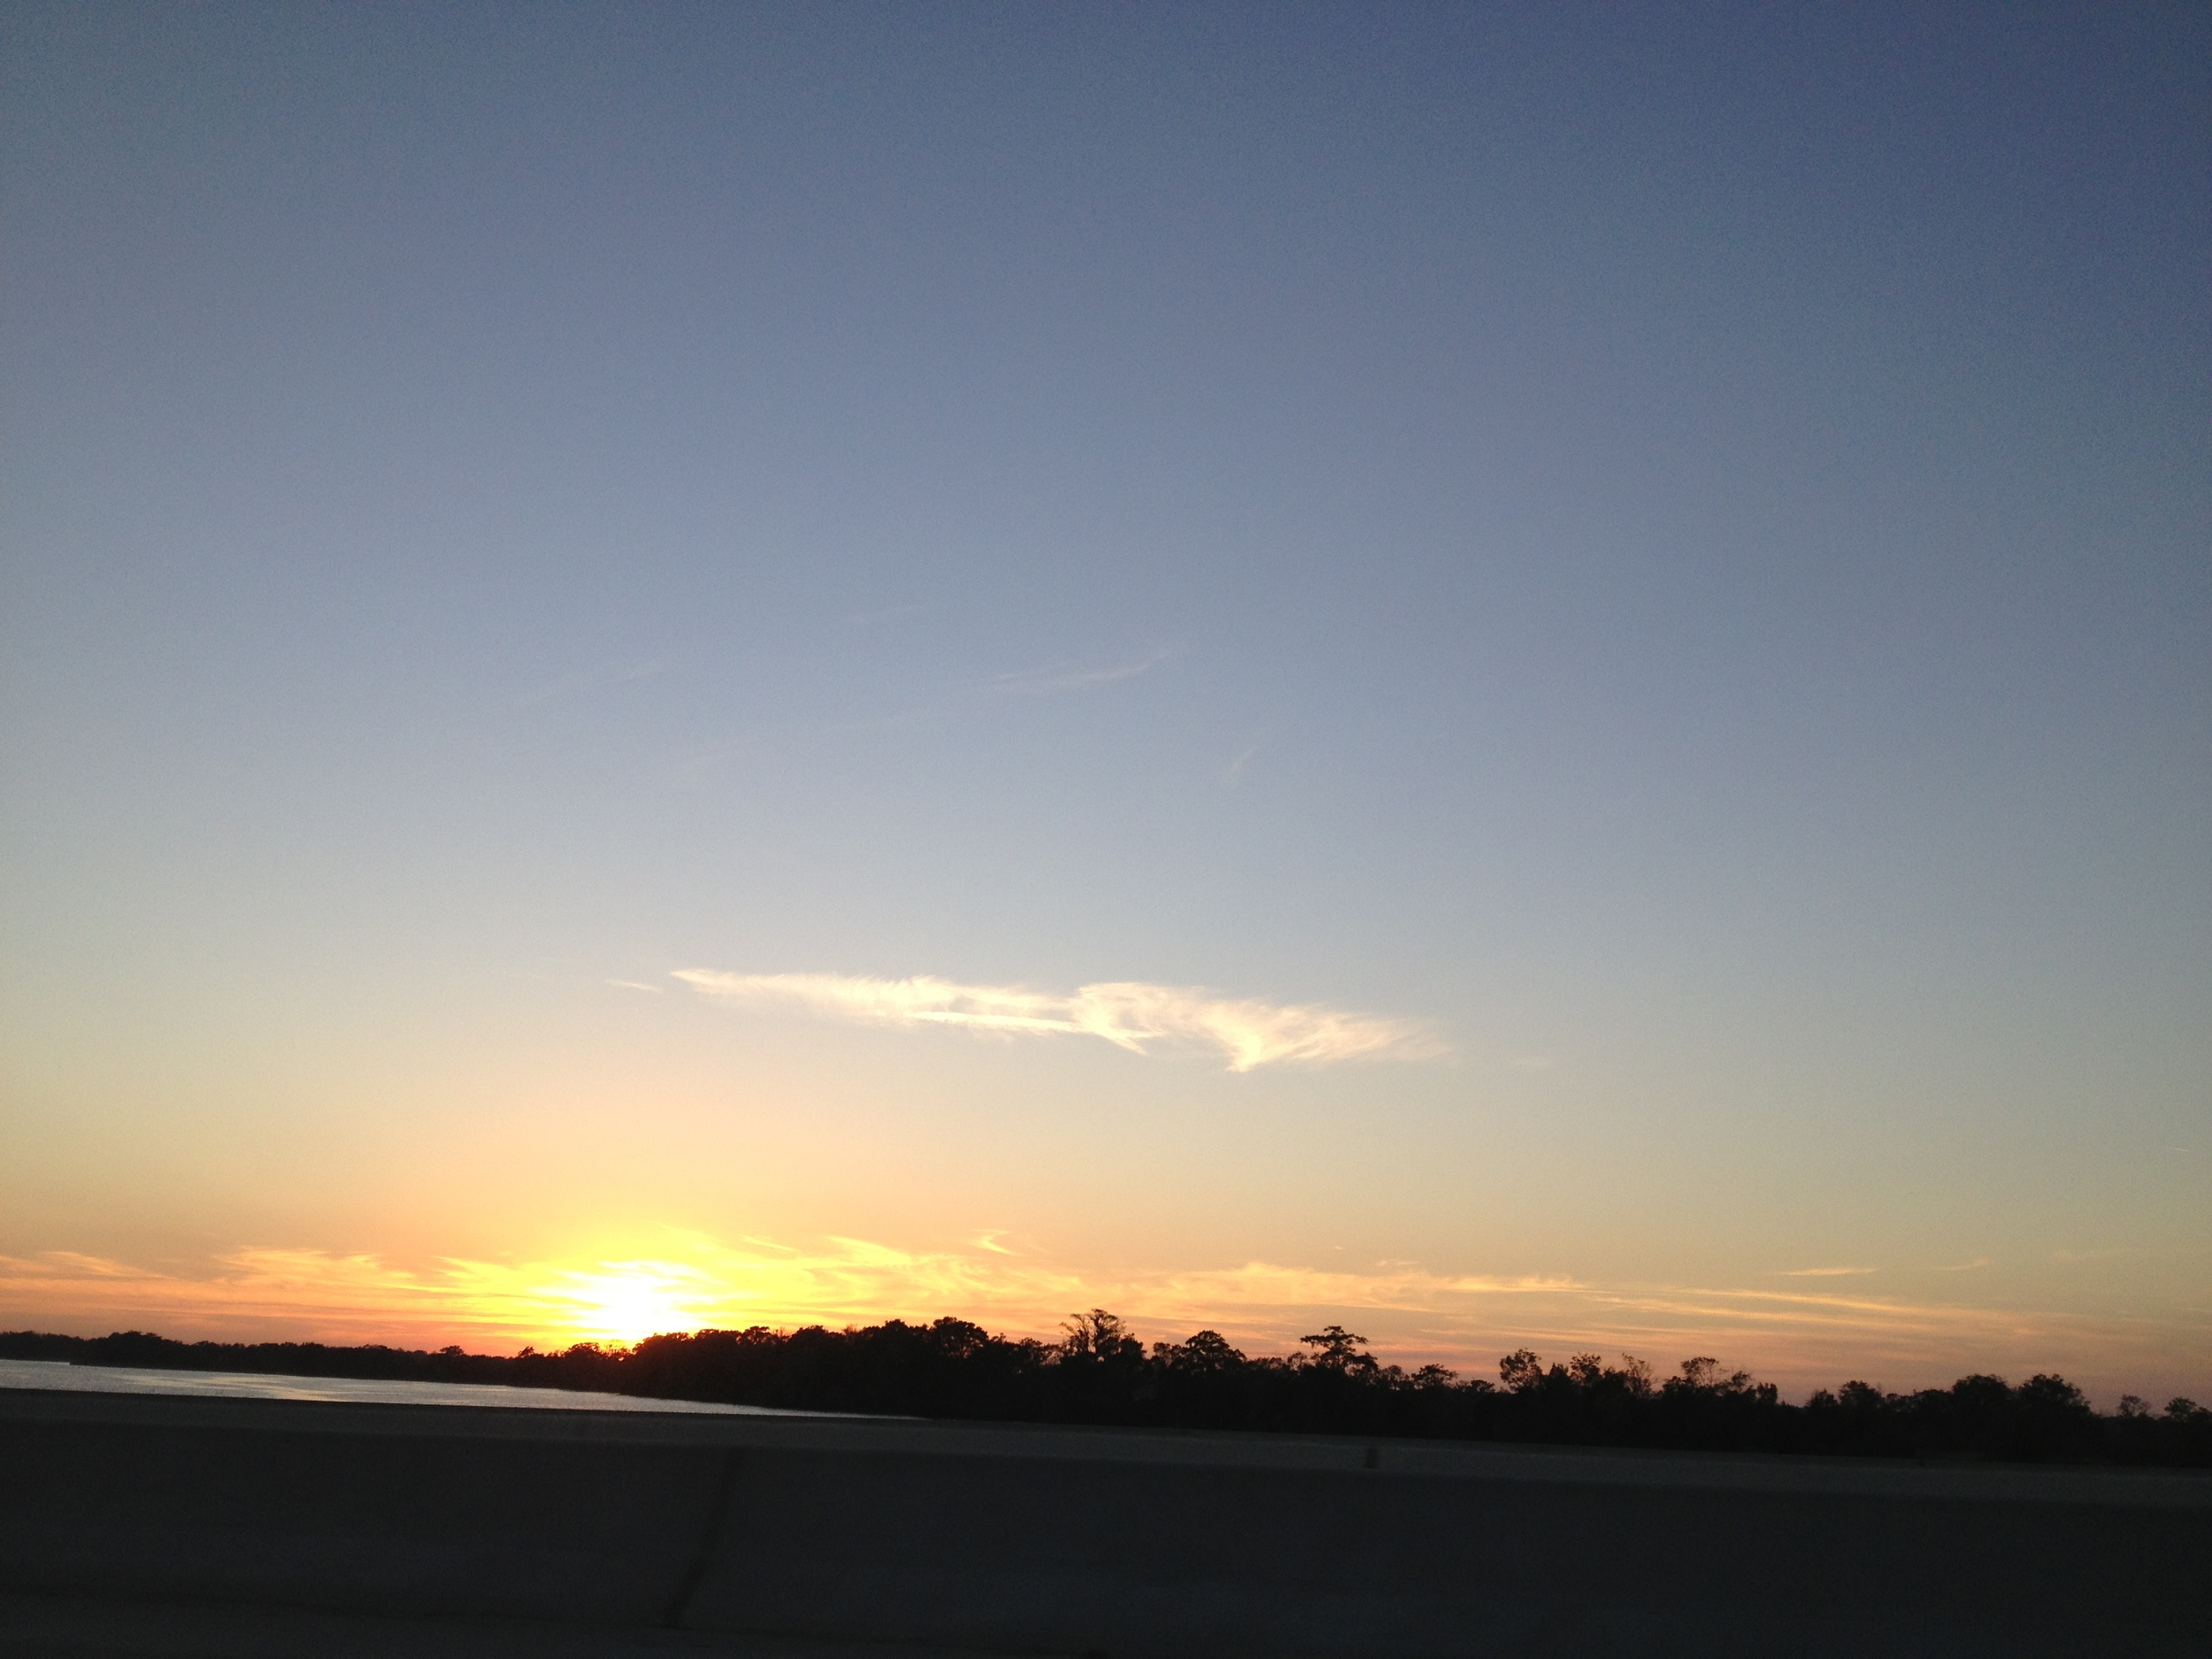 I-95 Sunset begins (80mph out the window)